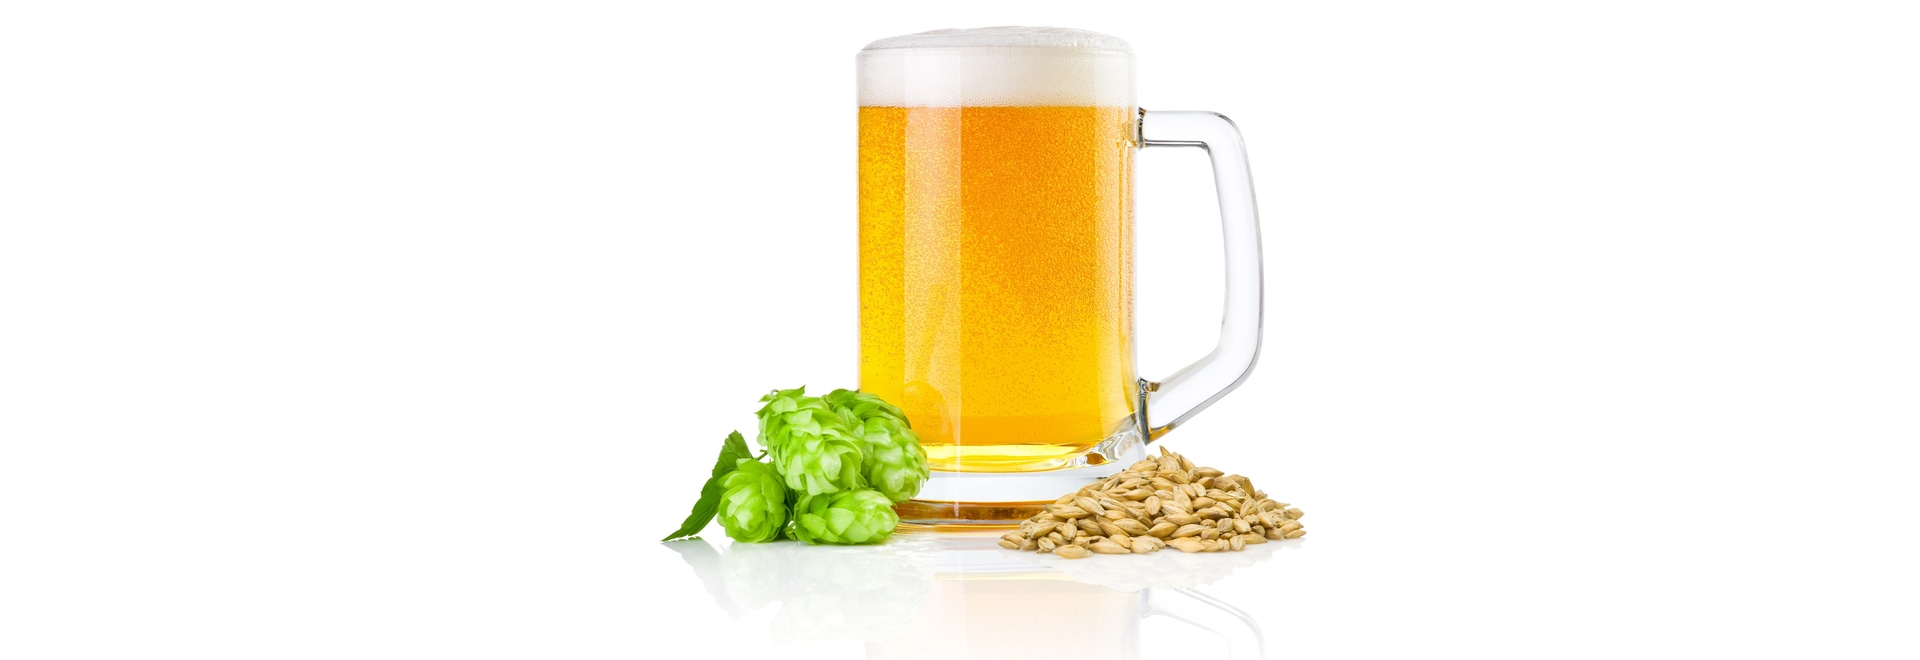 Decanter technology in breweries